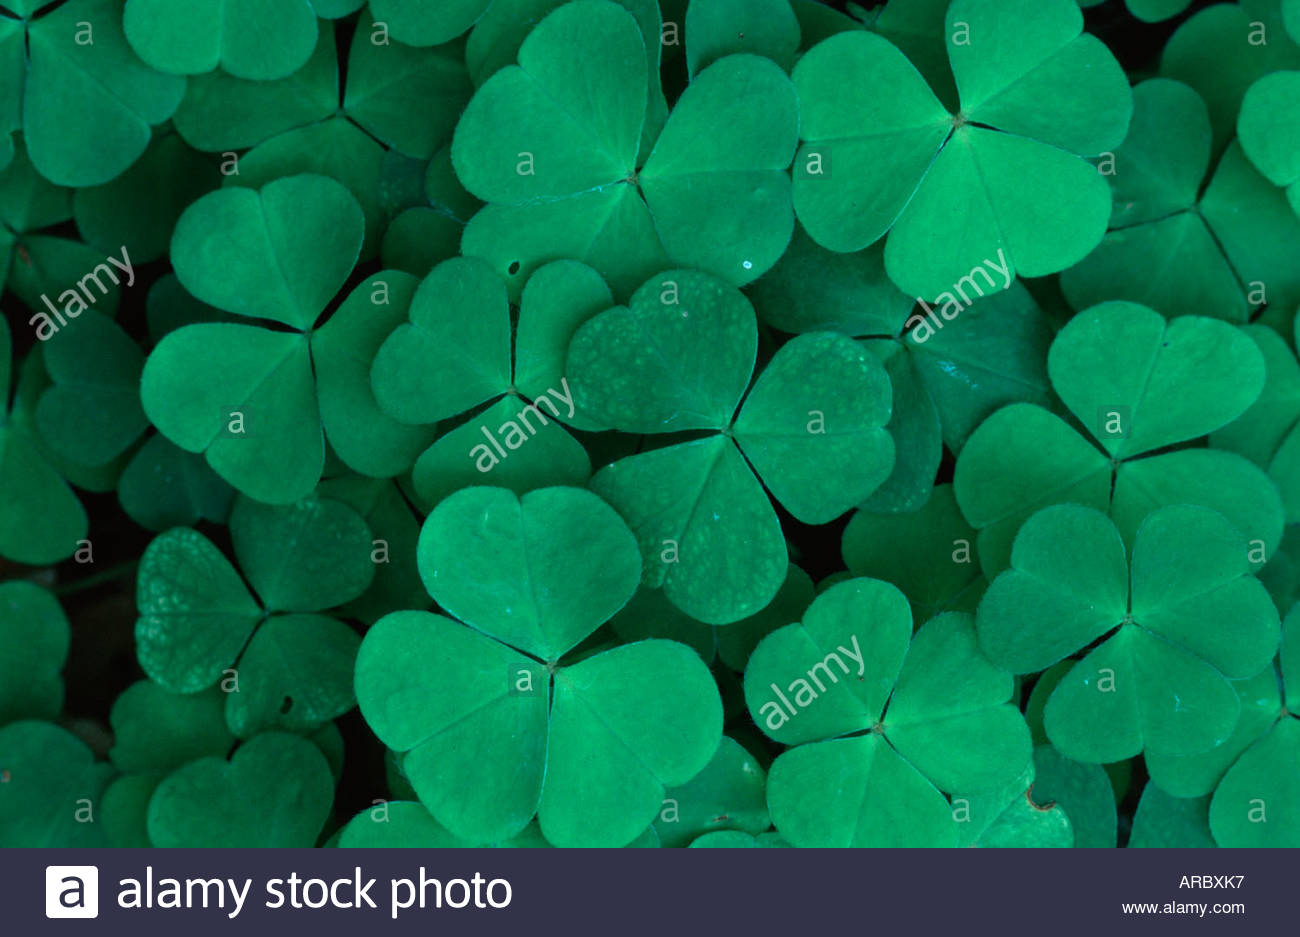 Clover / Klee - Stock Image